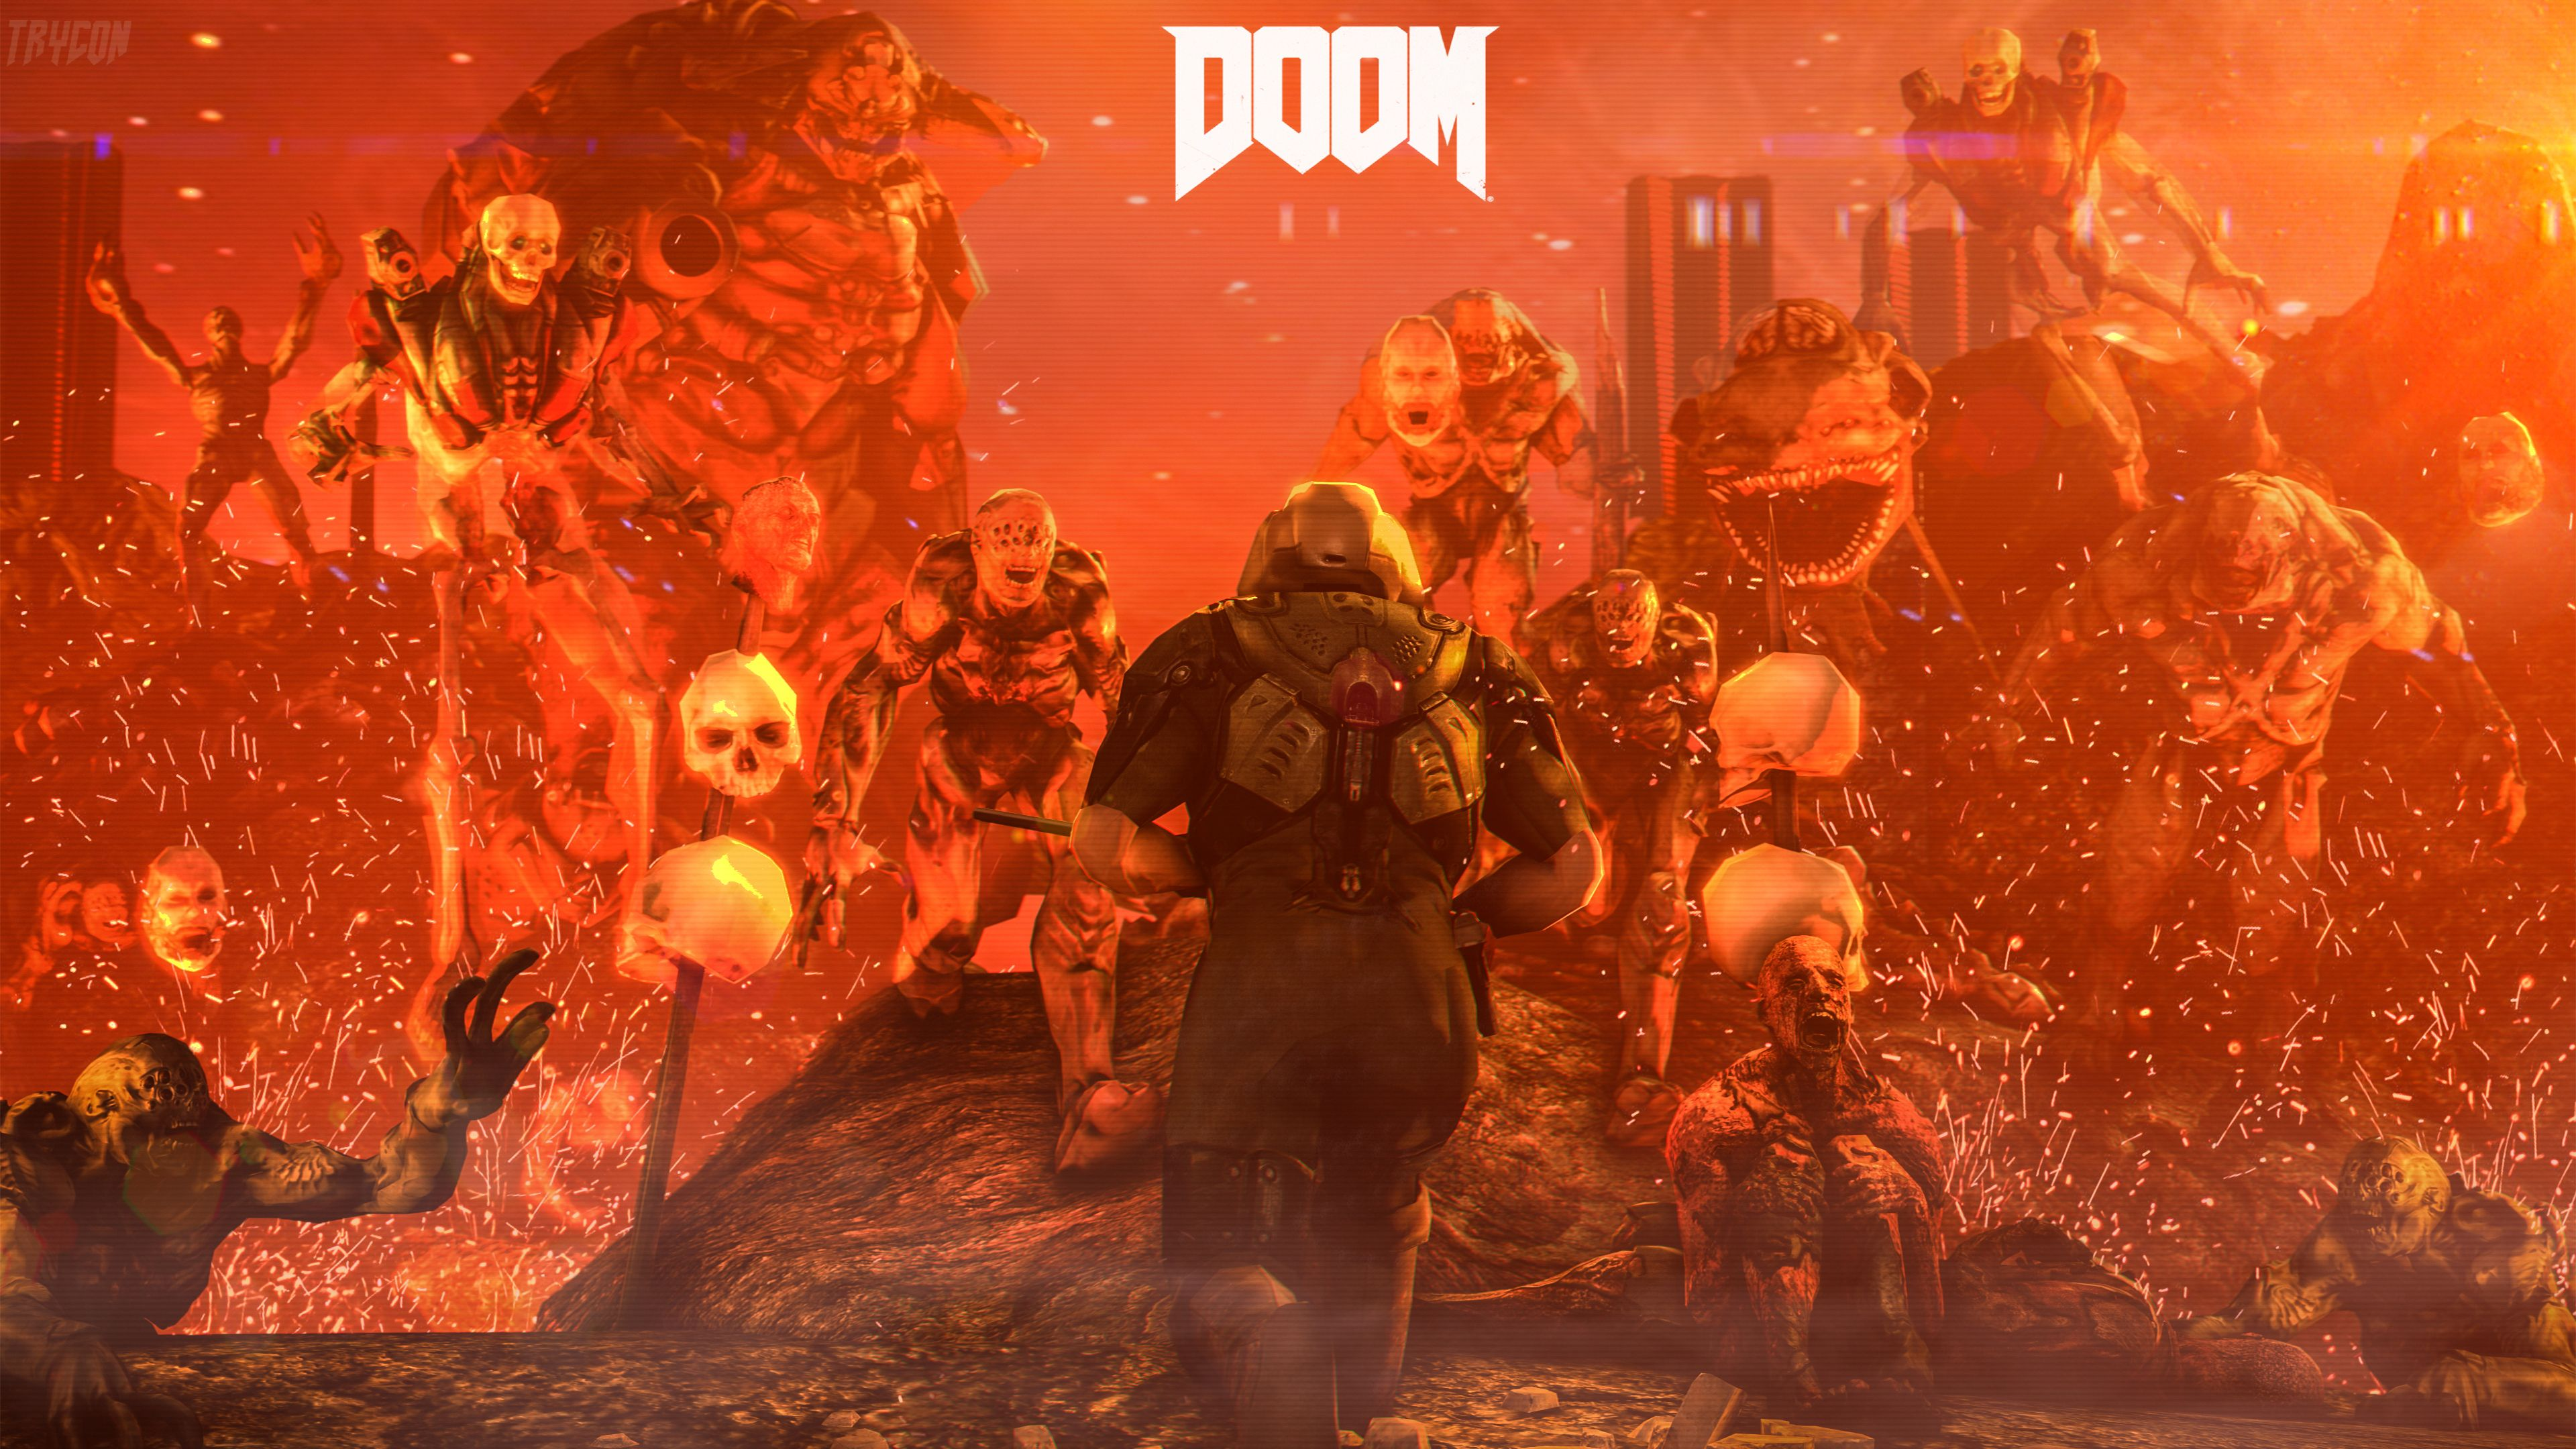 Wallpaper 4k Doom 4 Digital Art Doom 4 Wallpapers Doom Wallpapers